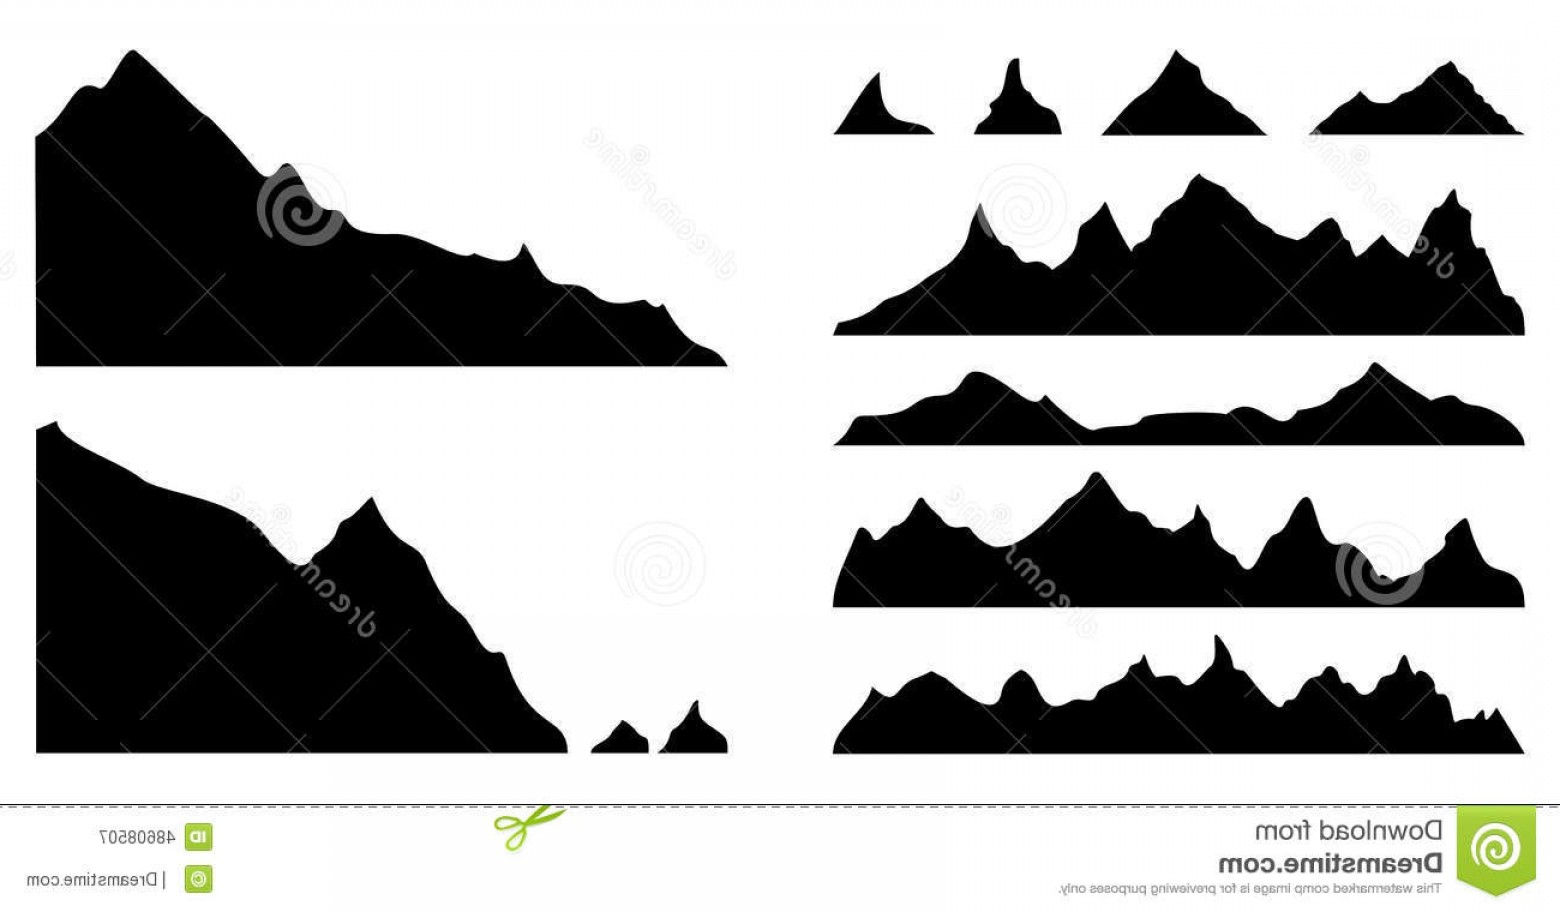 Mountain Range Silhouette Vector Free: Comfortable Stock Illustration Mountains Silhouettes Set Mountain Vector Illustration Image